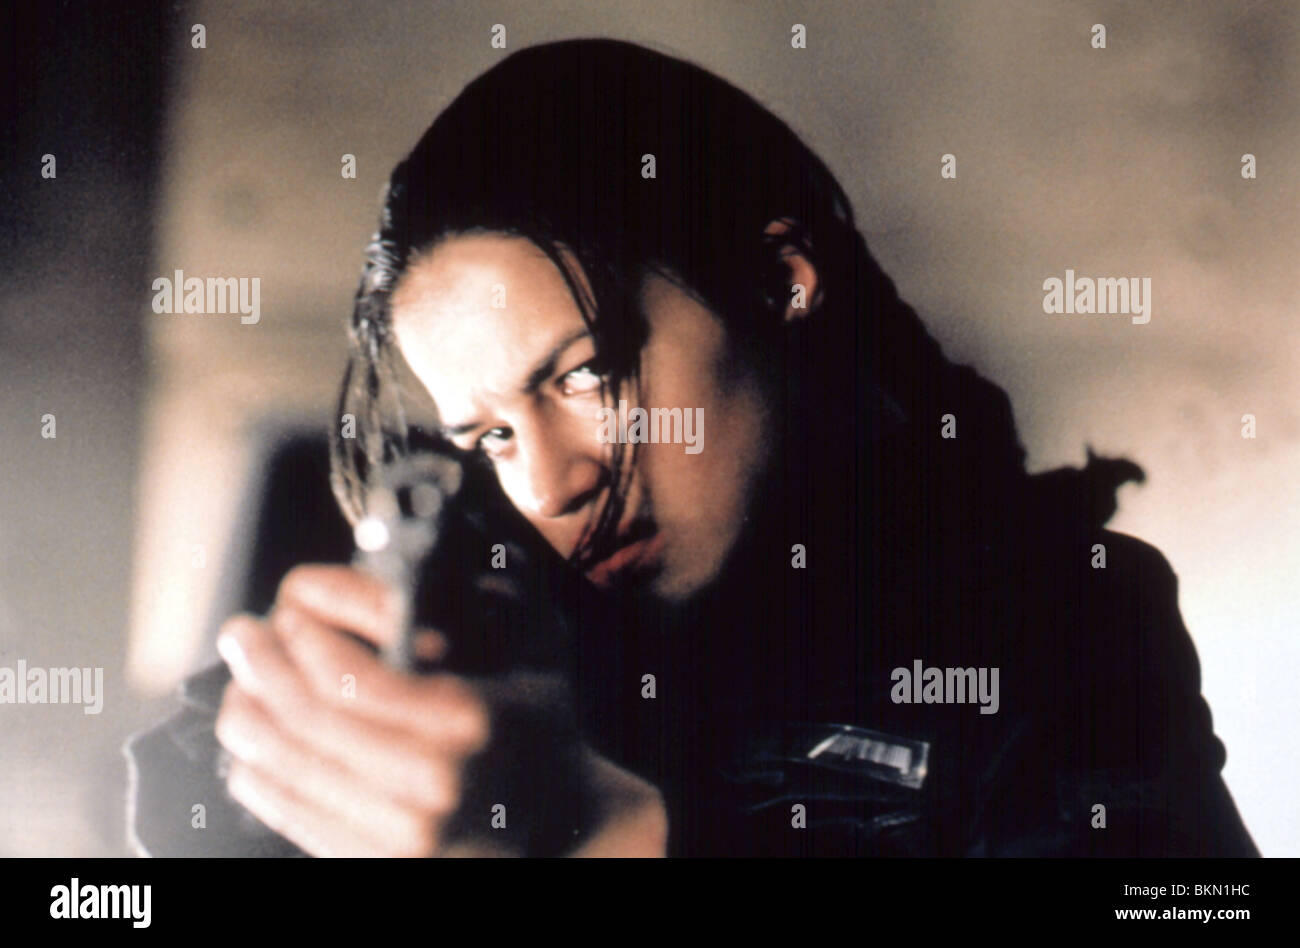 Resident Evil 2002 Michelle Rodriguez Revi 007 Stock Photo Alamy